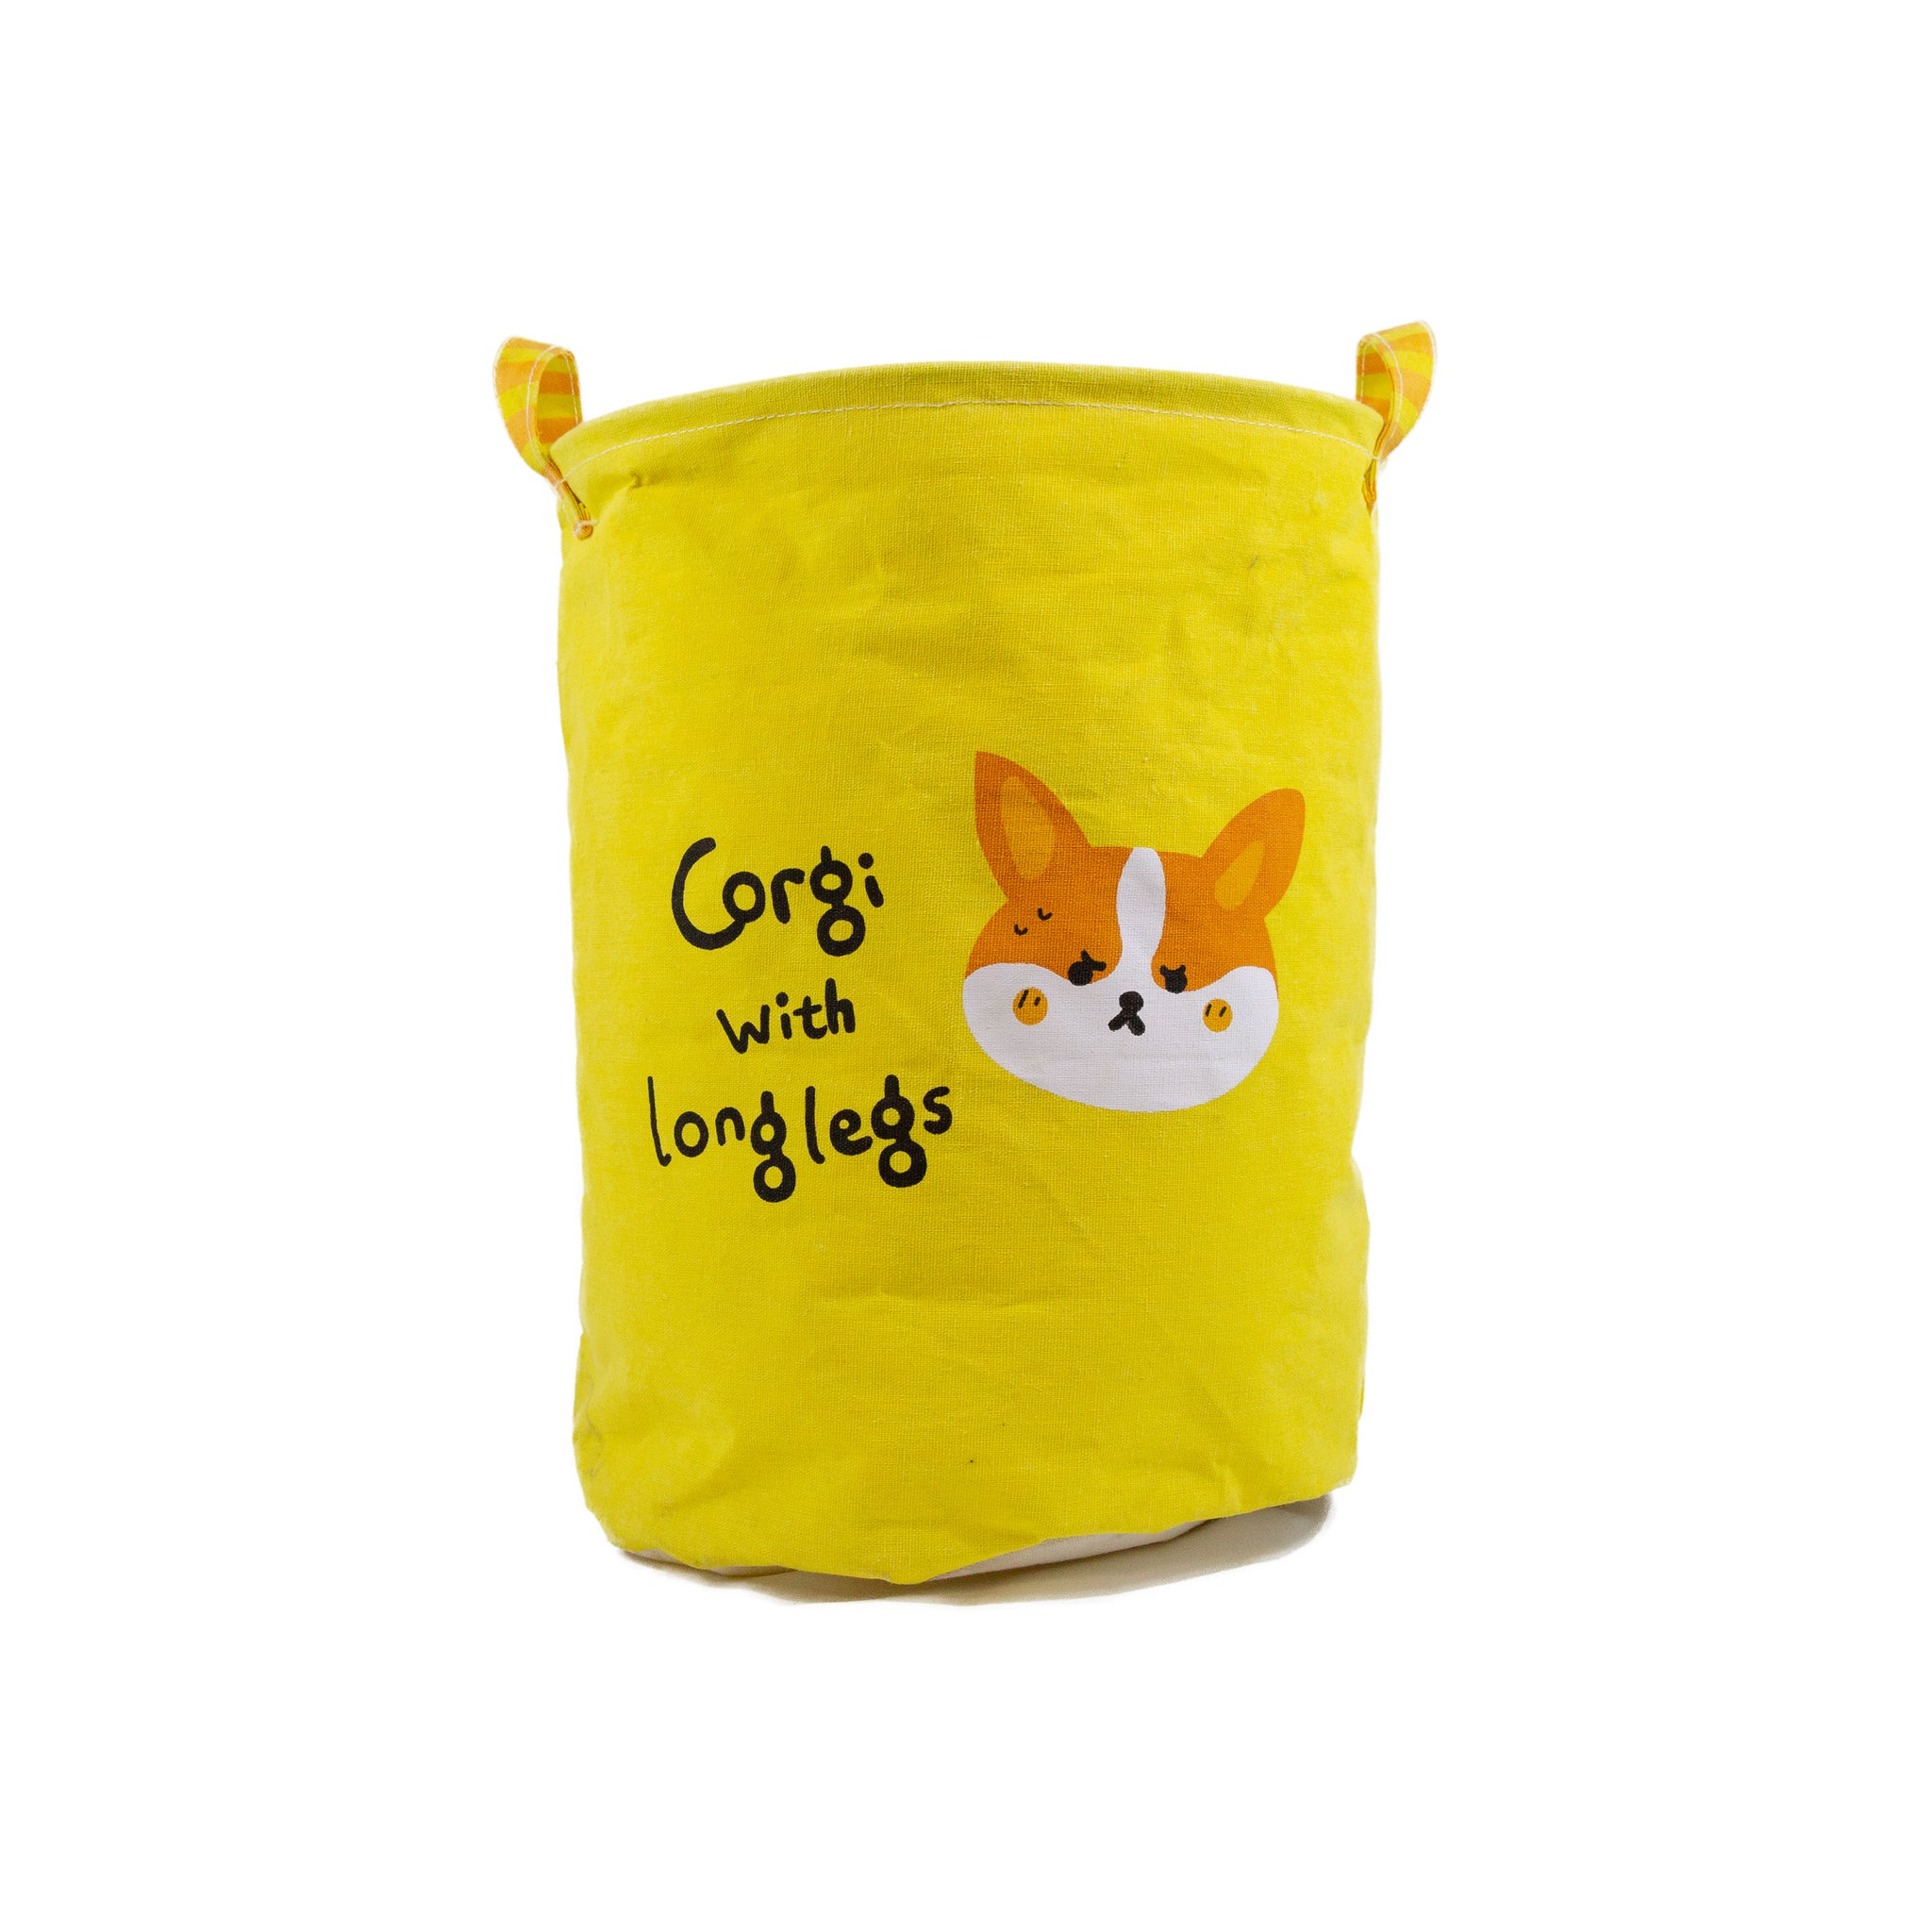 Corgi Laundry Basket